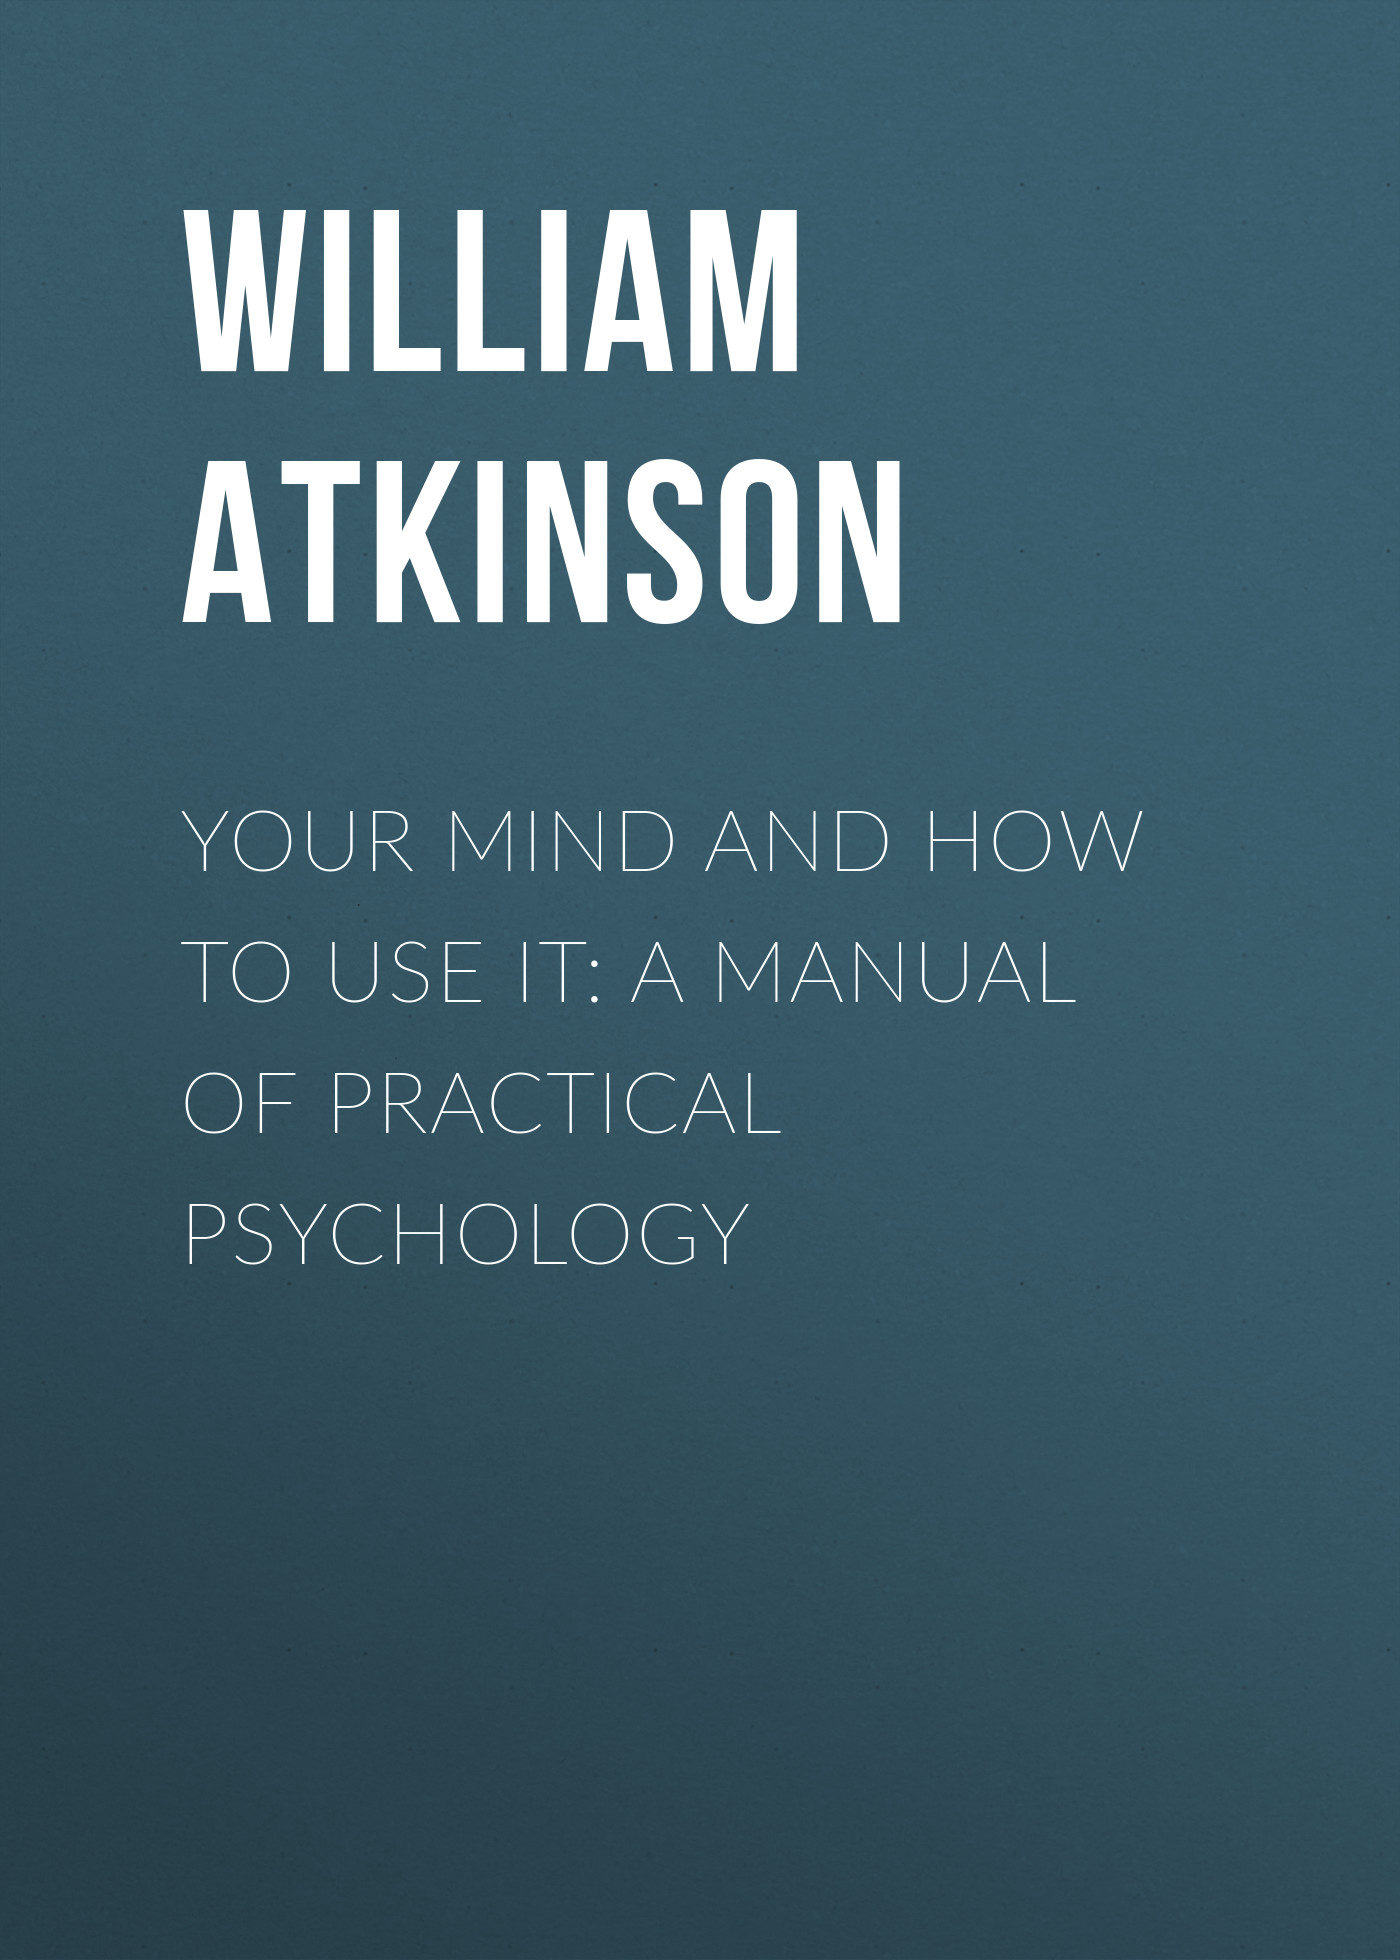 Atkinson William Walker Your Mind and How to Use It: A Manual of Practical Psychology atkinson william walker your mind and how to use it a manual of practical psychology